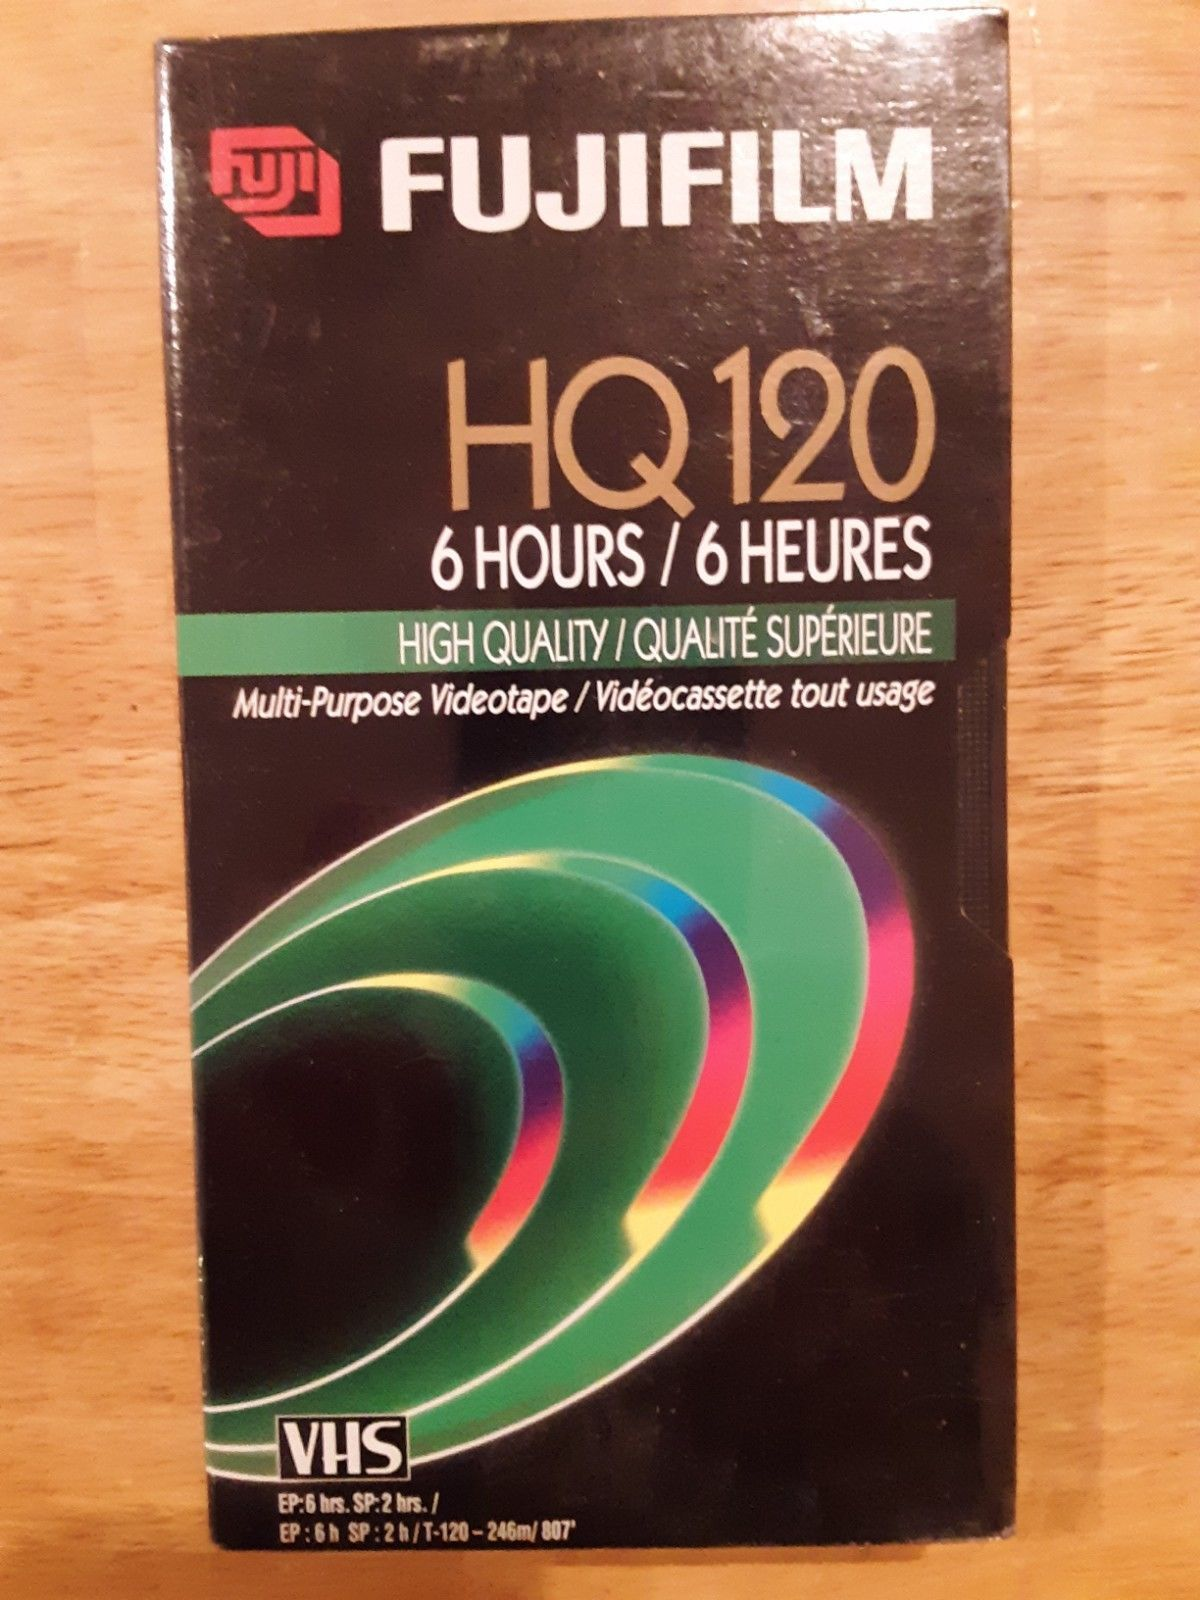 FUFIFILM T-120 High Quality VHS HQ120 Blank Tape New Sealed 6 Hours qty:2